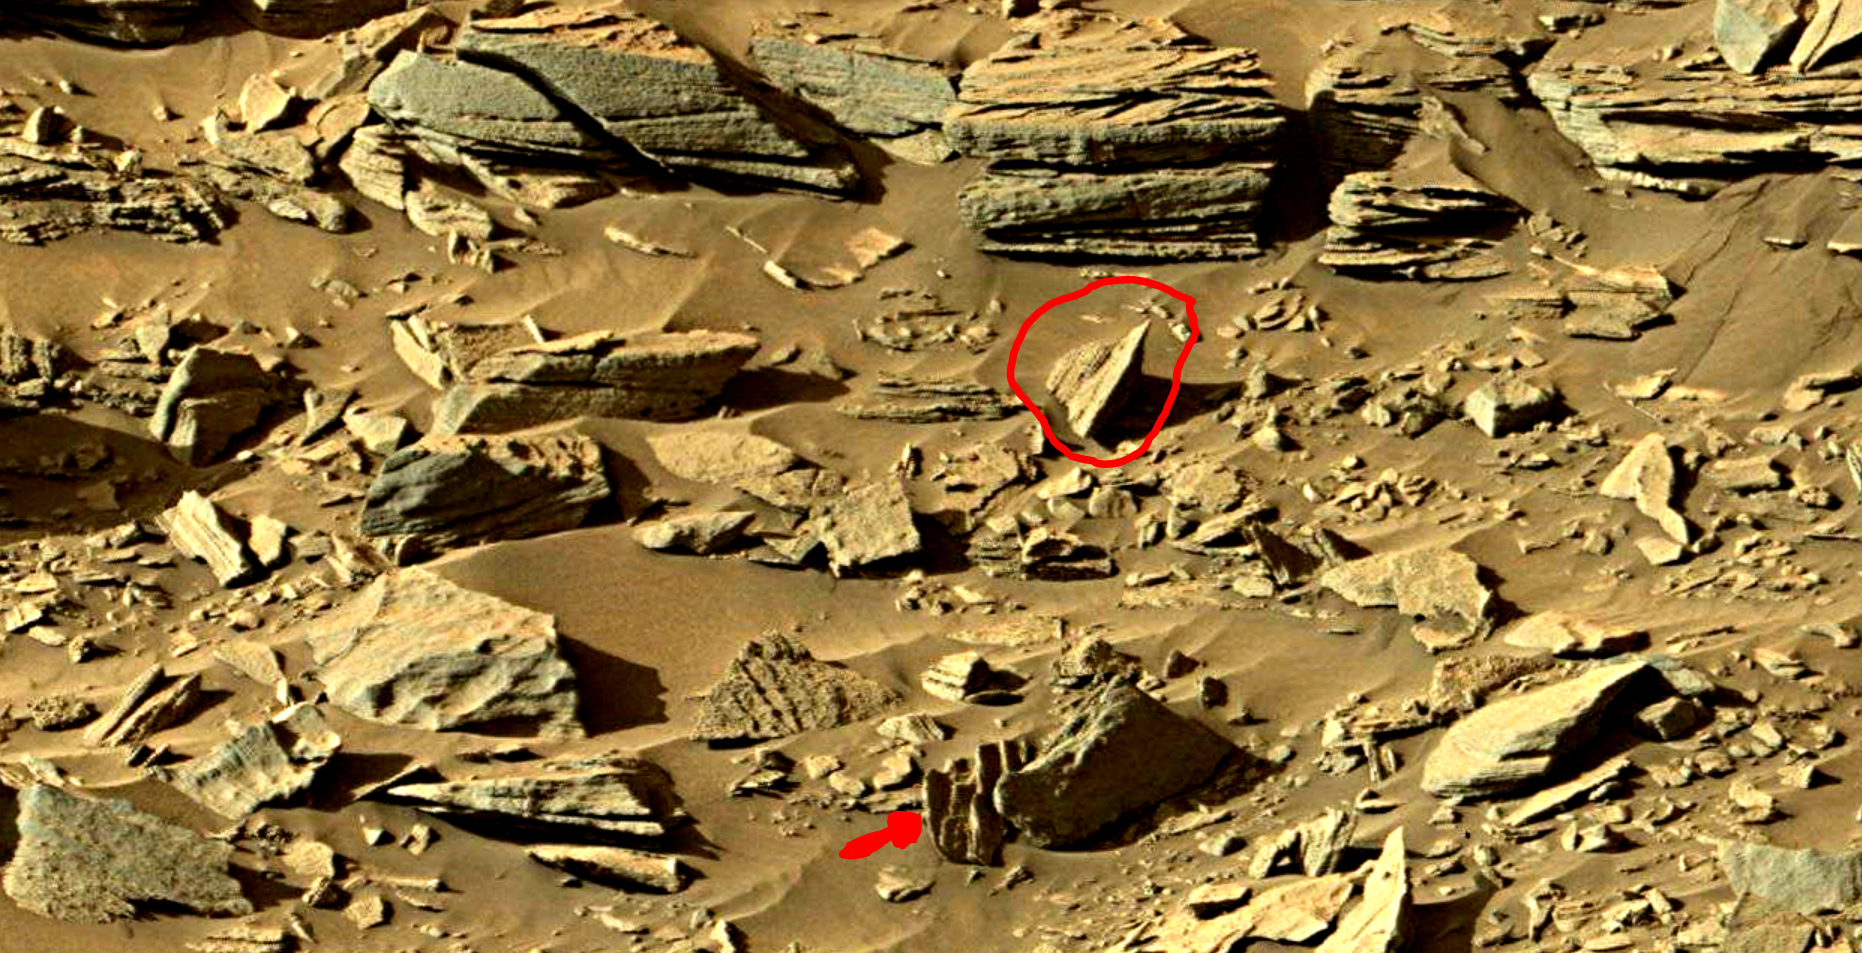 mars sol 1301 anomaly-artifacts 11a was life on mars